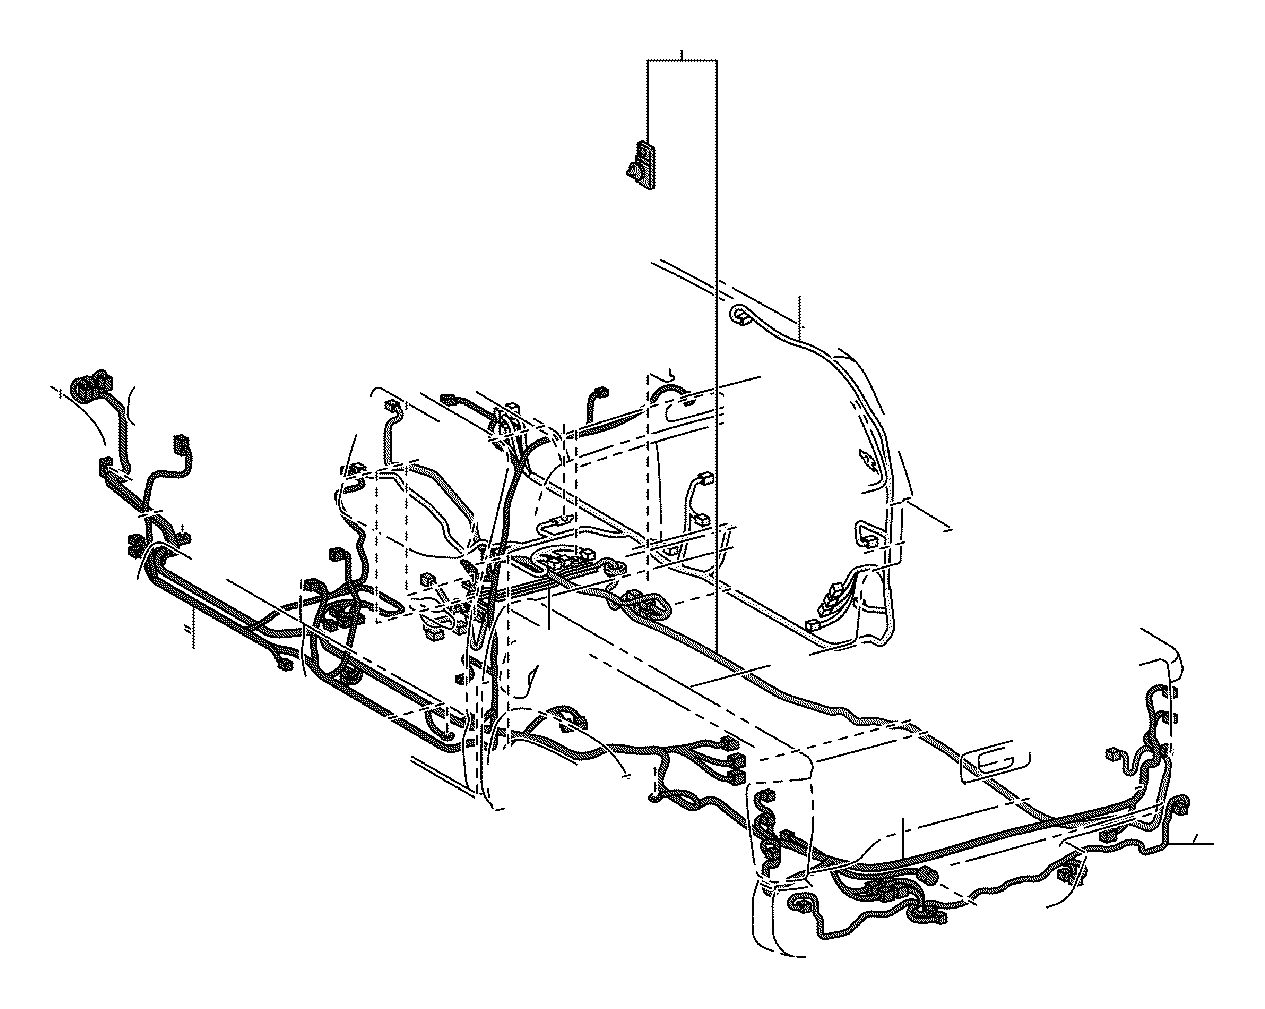 Toyota Tacoma Wire frame, no. 3. Engine, clamp, roof